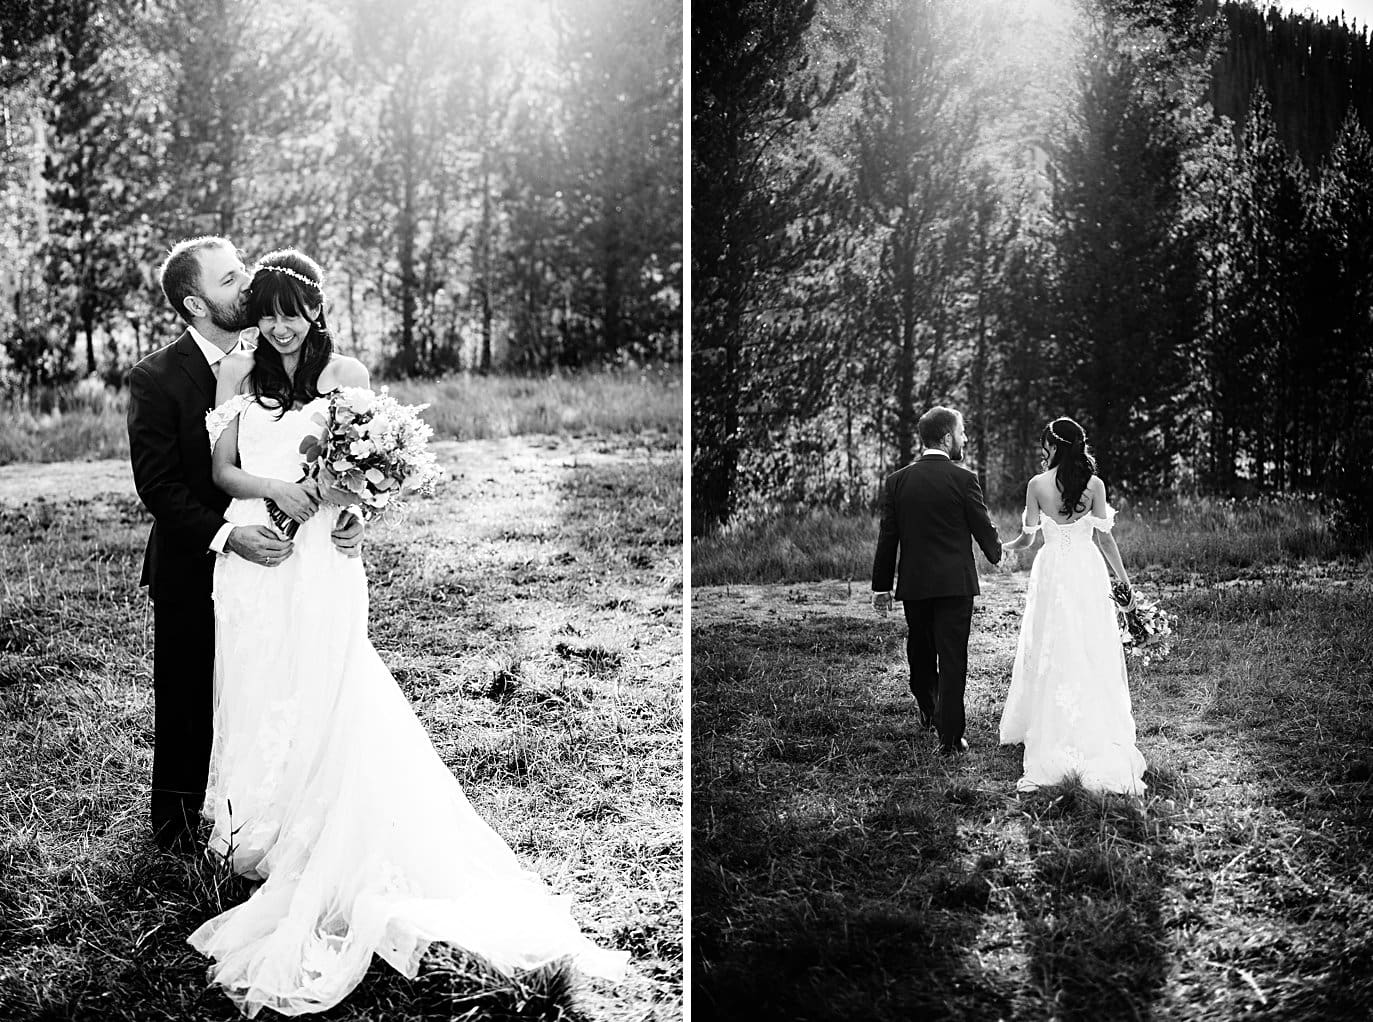 romantic black and white portraits of bride and groom at intimate Grand Lake wedding by Estes Park wedding photographer Jennie Crate